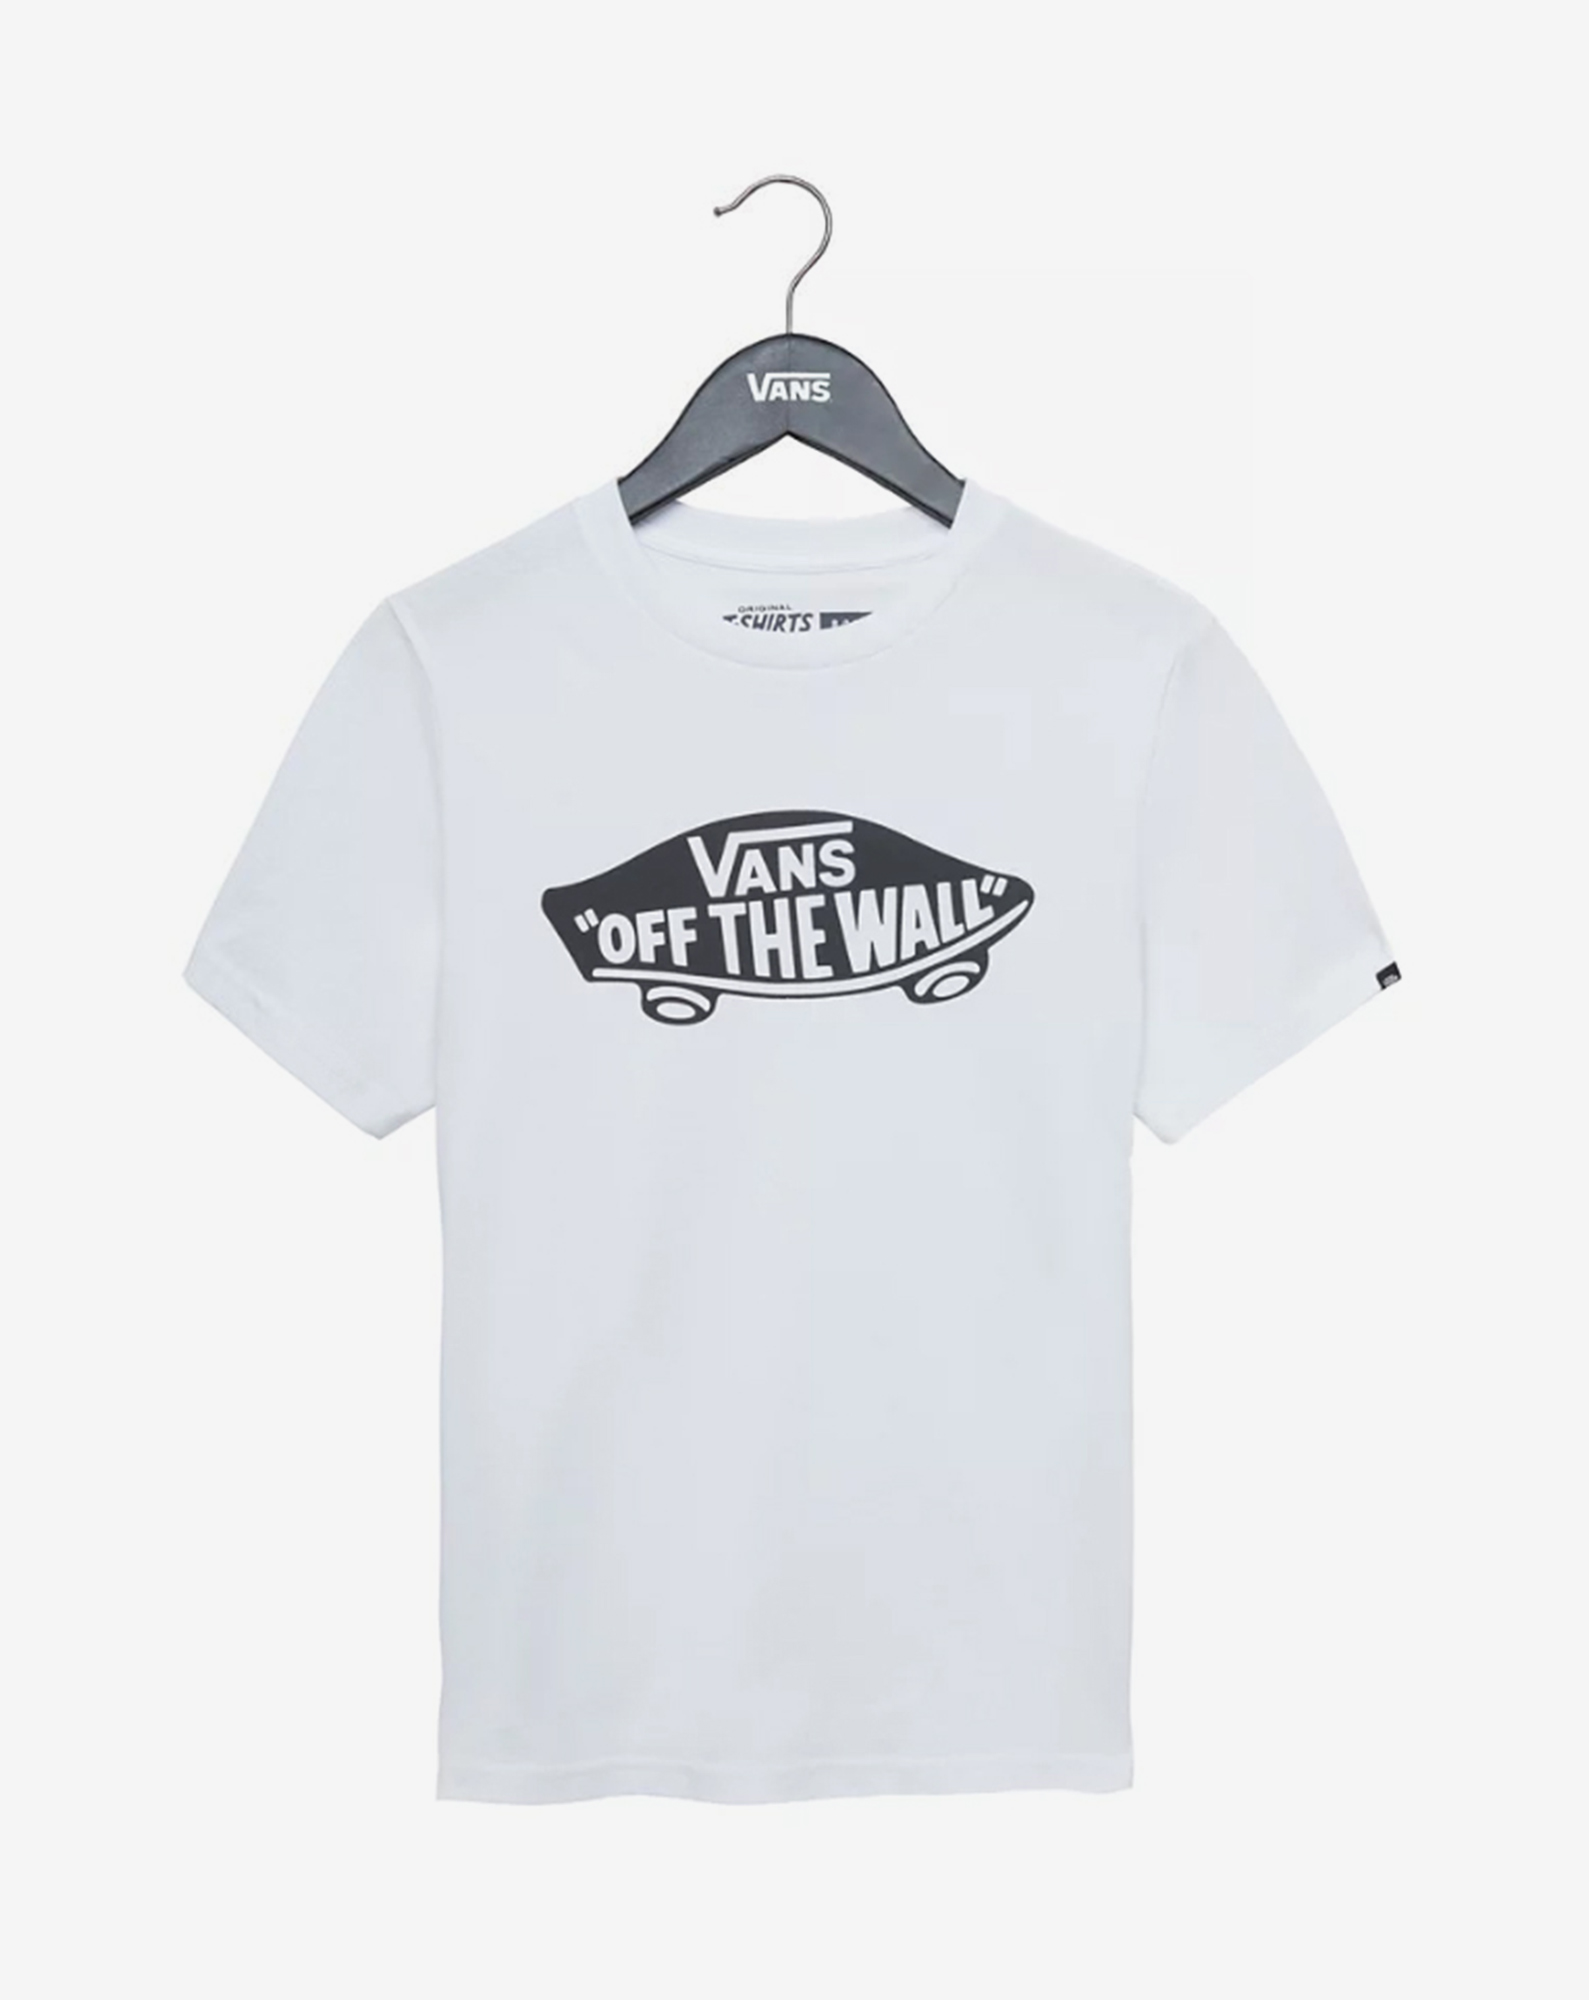 náhled BY OTW BOYS White/Black